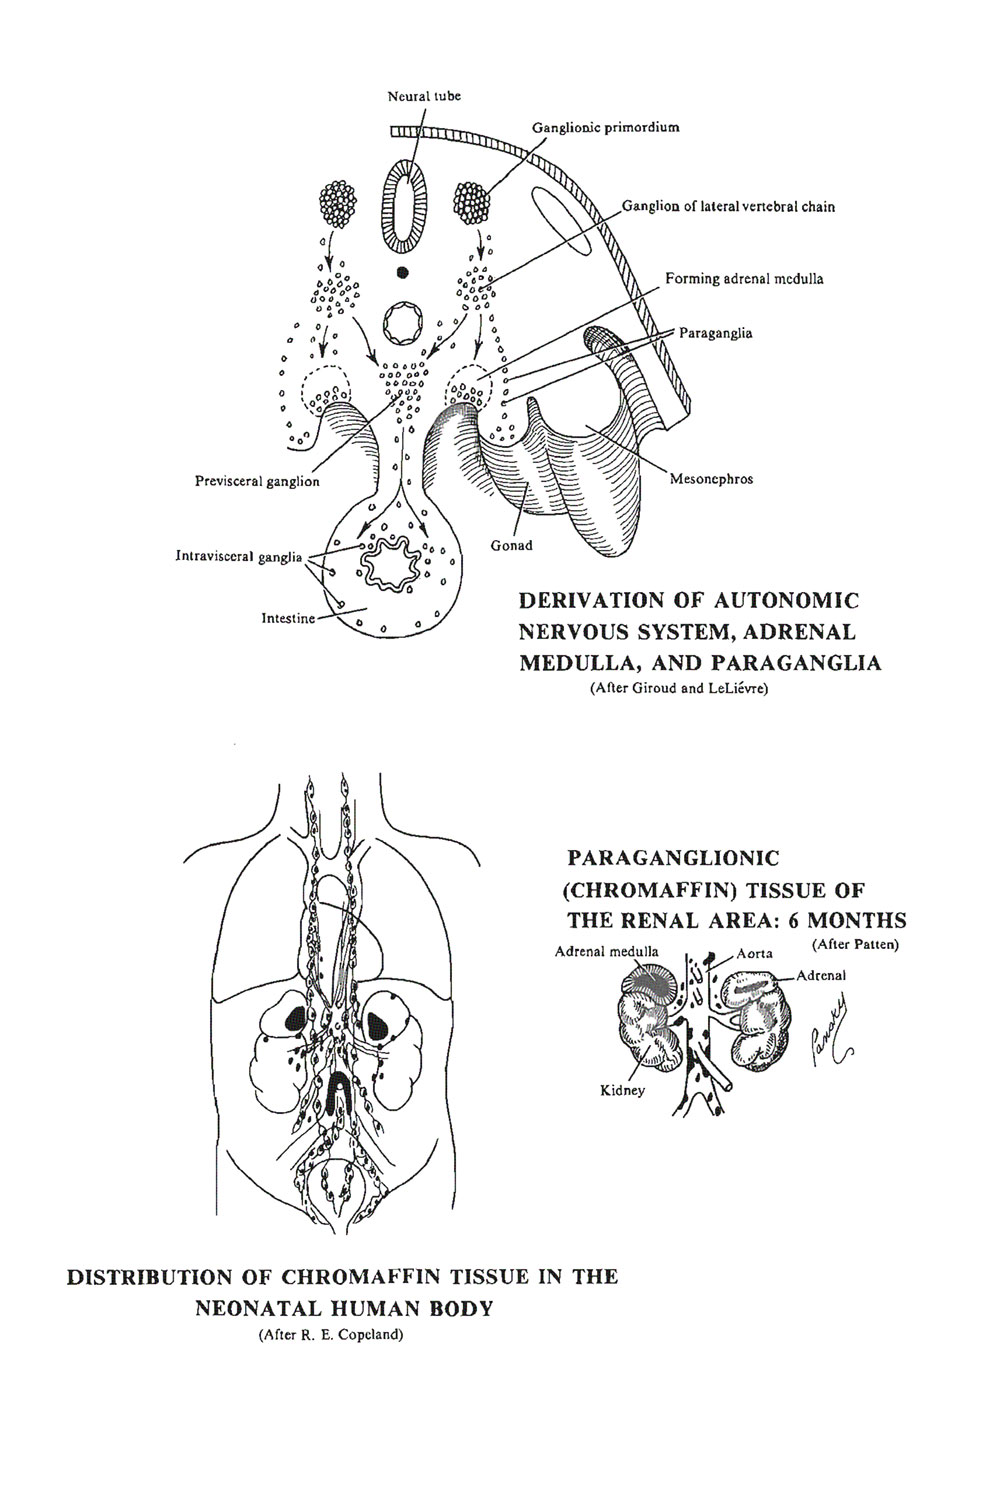 the paraganglionic system:  the paraganglia: image #1